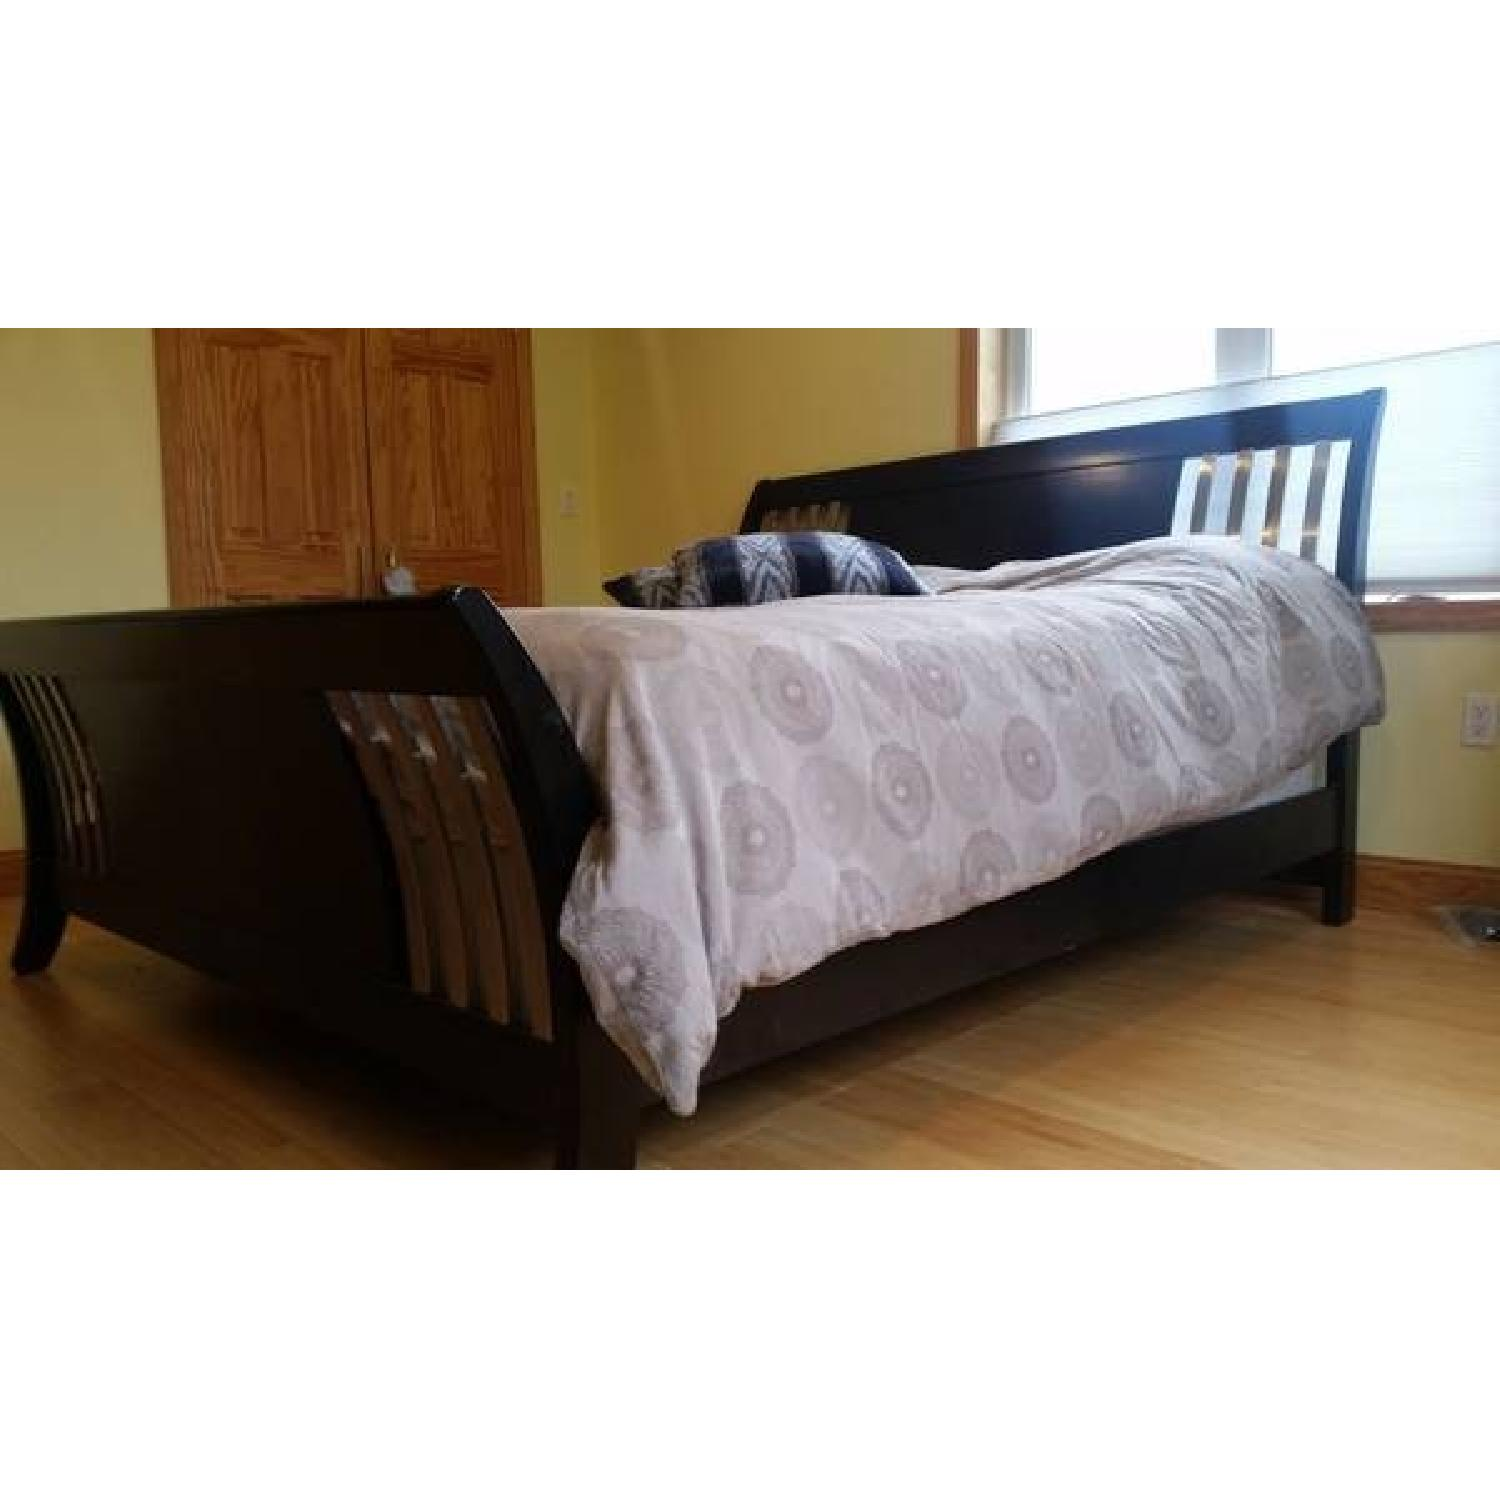 King Size Sleigh Bed Frame - image-5